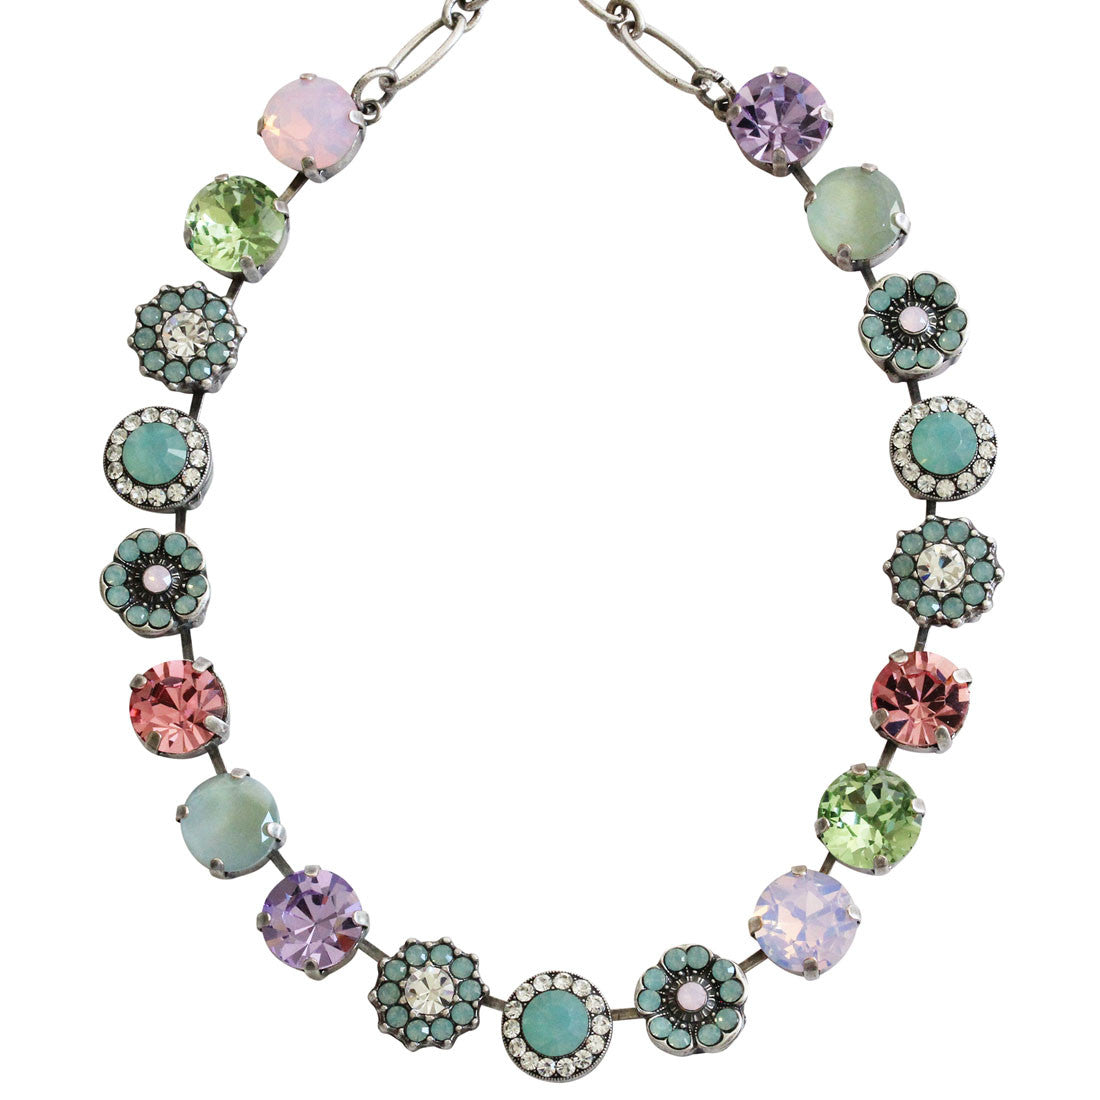 "Mariana Silver Plated Large Flower Shapes Swarovski Crystal Necklace, 18"" Pina Colada 3084 1063"